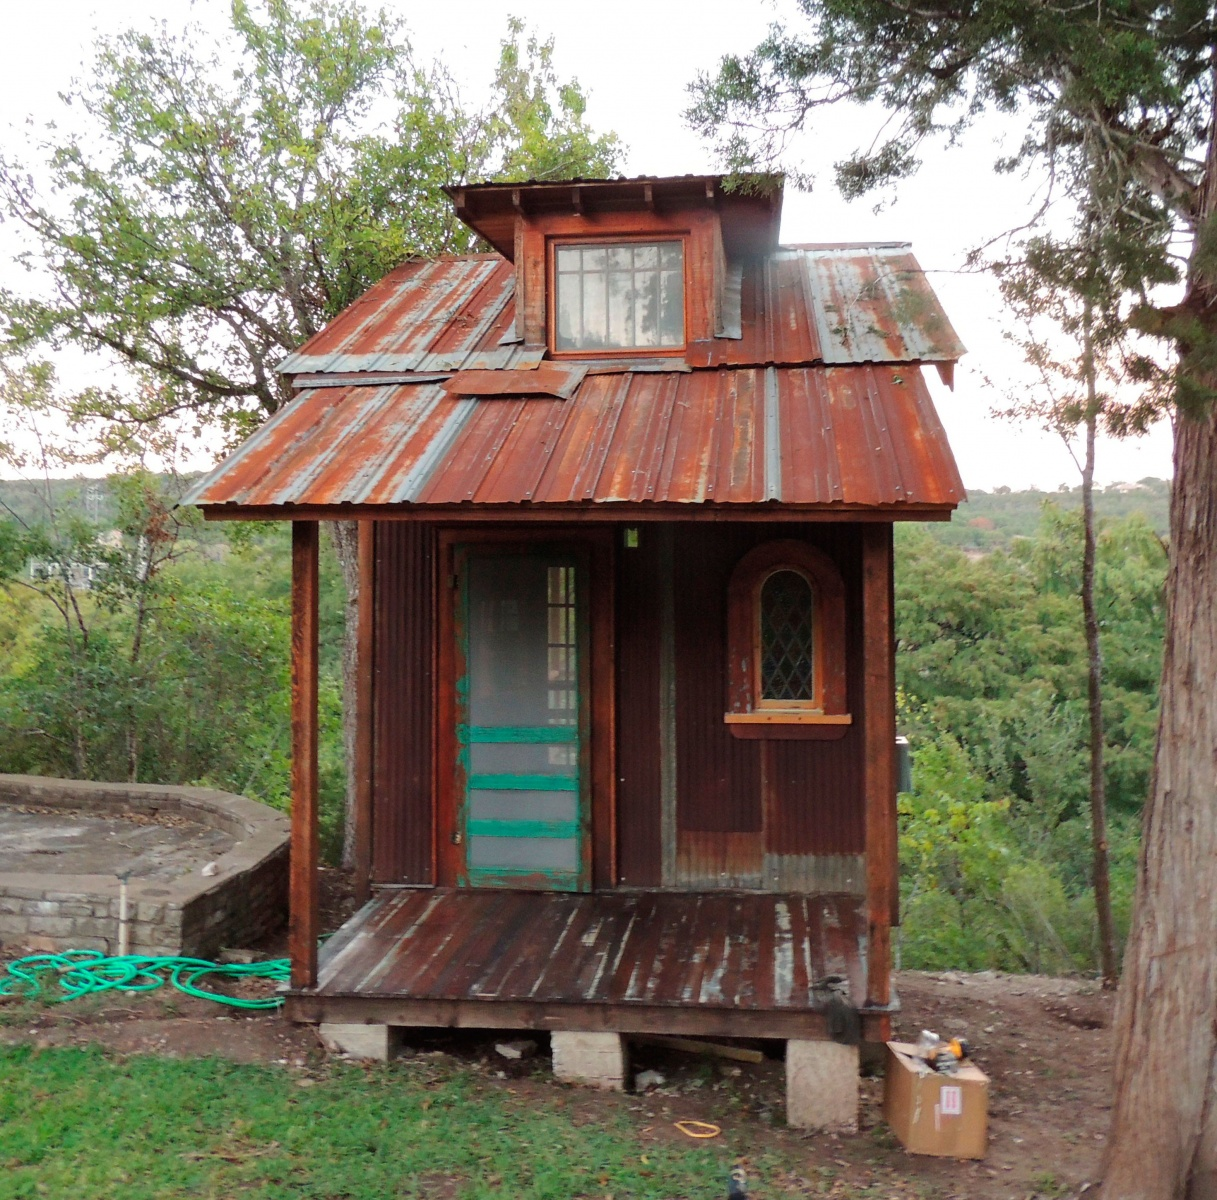 Tiny texas houses 39 recent work the shelter blog for Small home builders texas